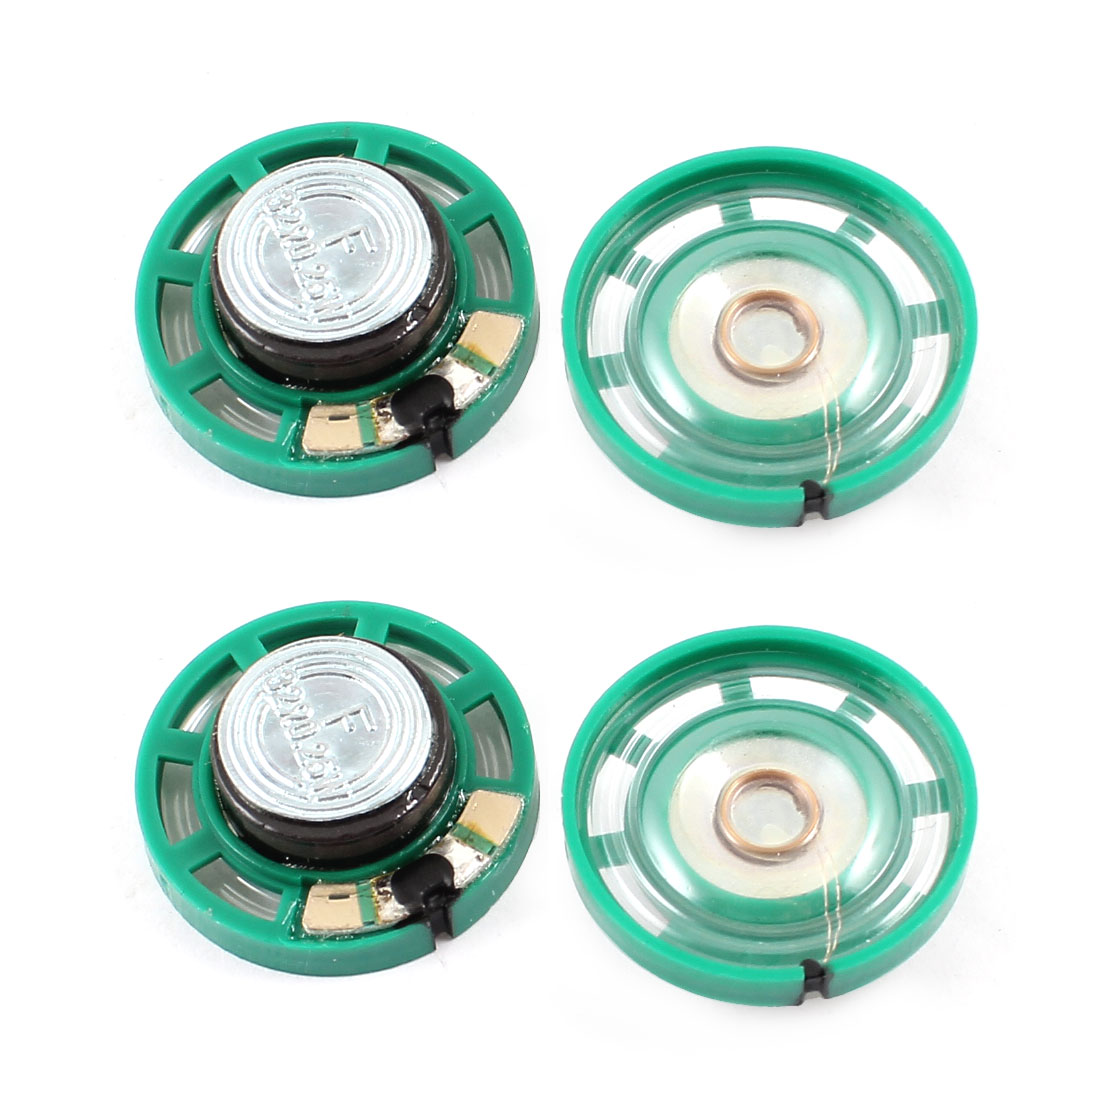 0.25W 32 Ohm Plastic Housing 27mm Dia Magnet Speaker Lautsprecher Loudspeaker 4Pcs